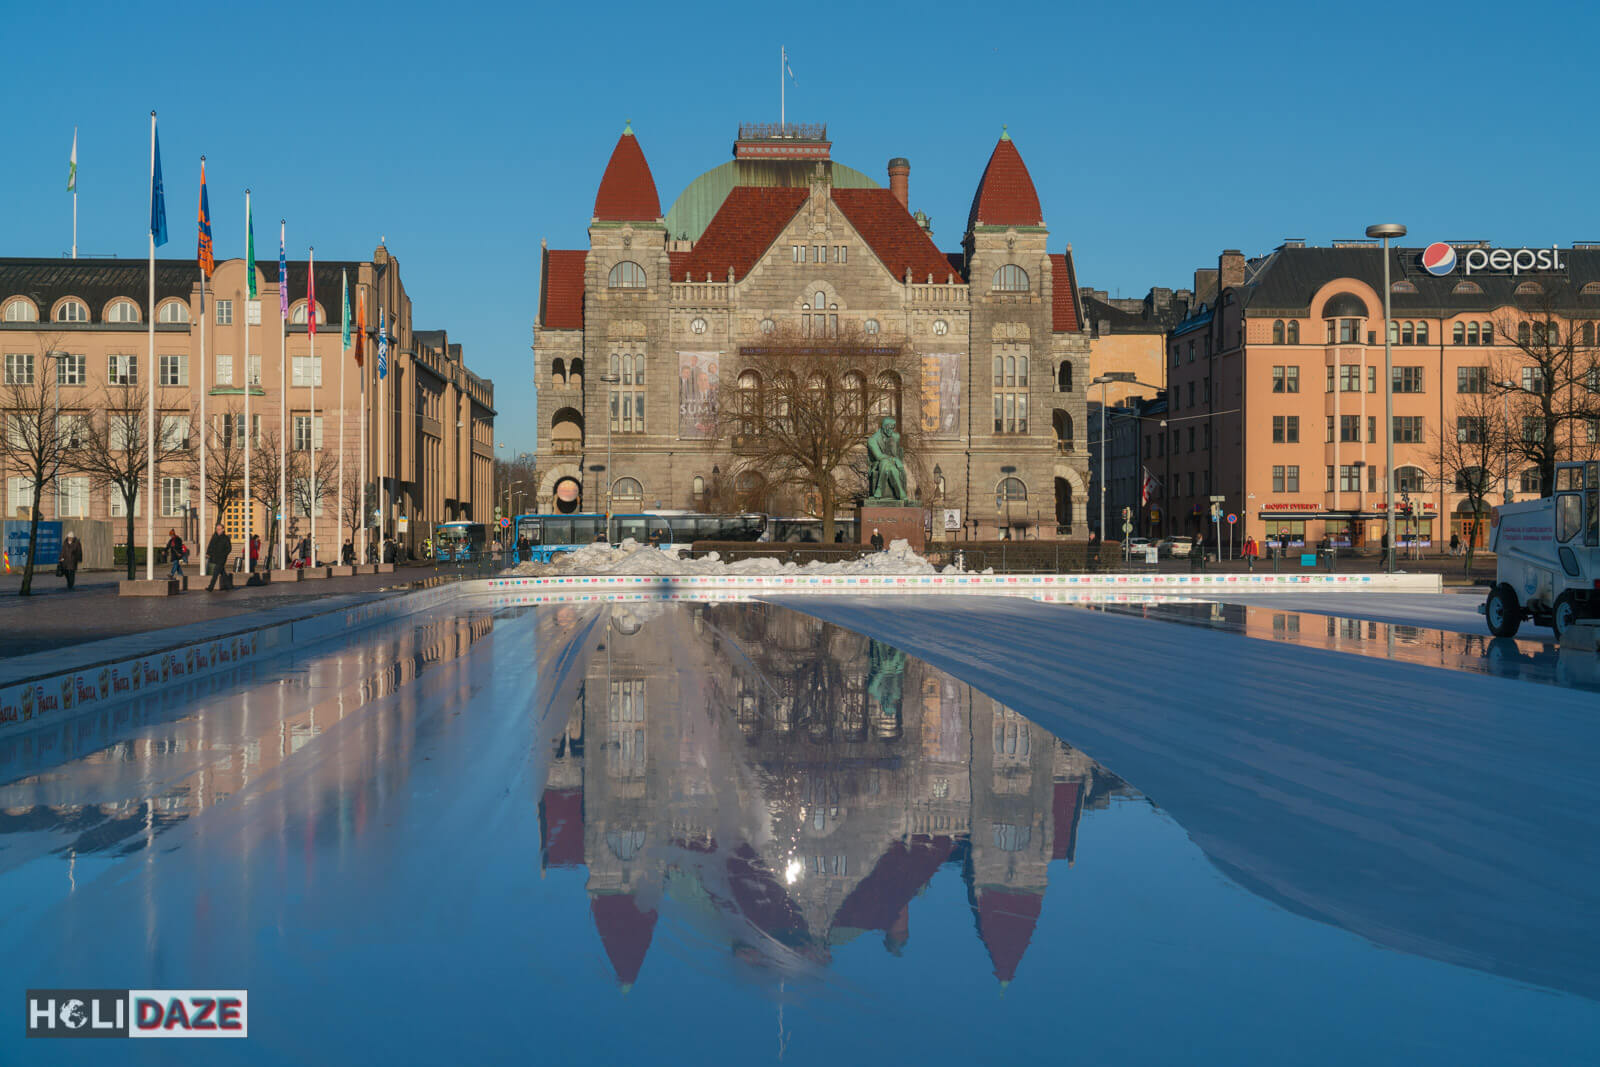 The Finnish National Theatre in Helsinki, Finland on a bright sunny day with perfectly blue sky